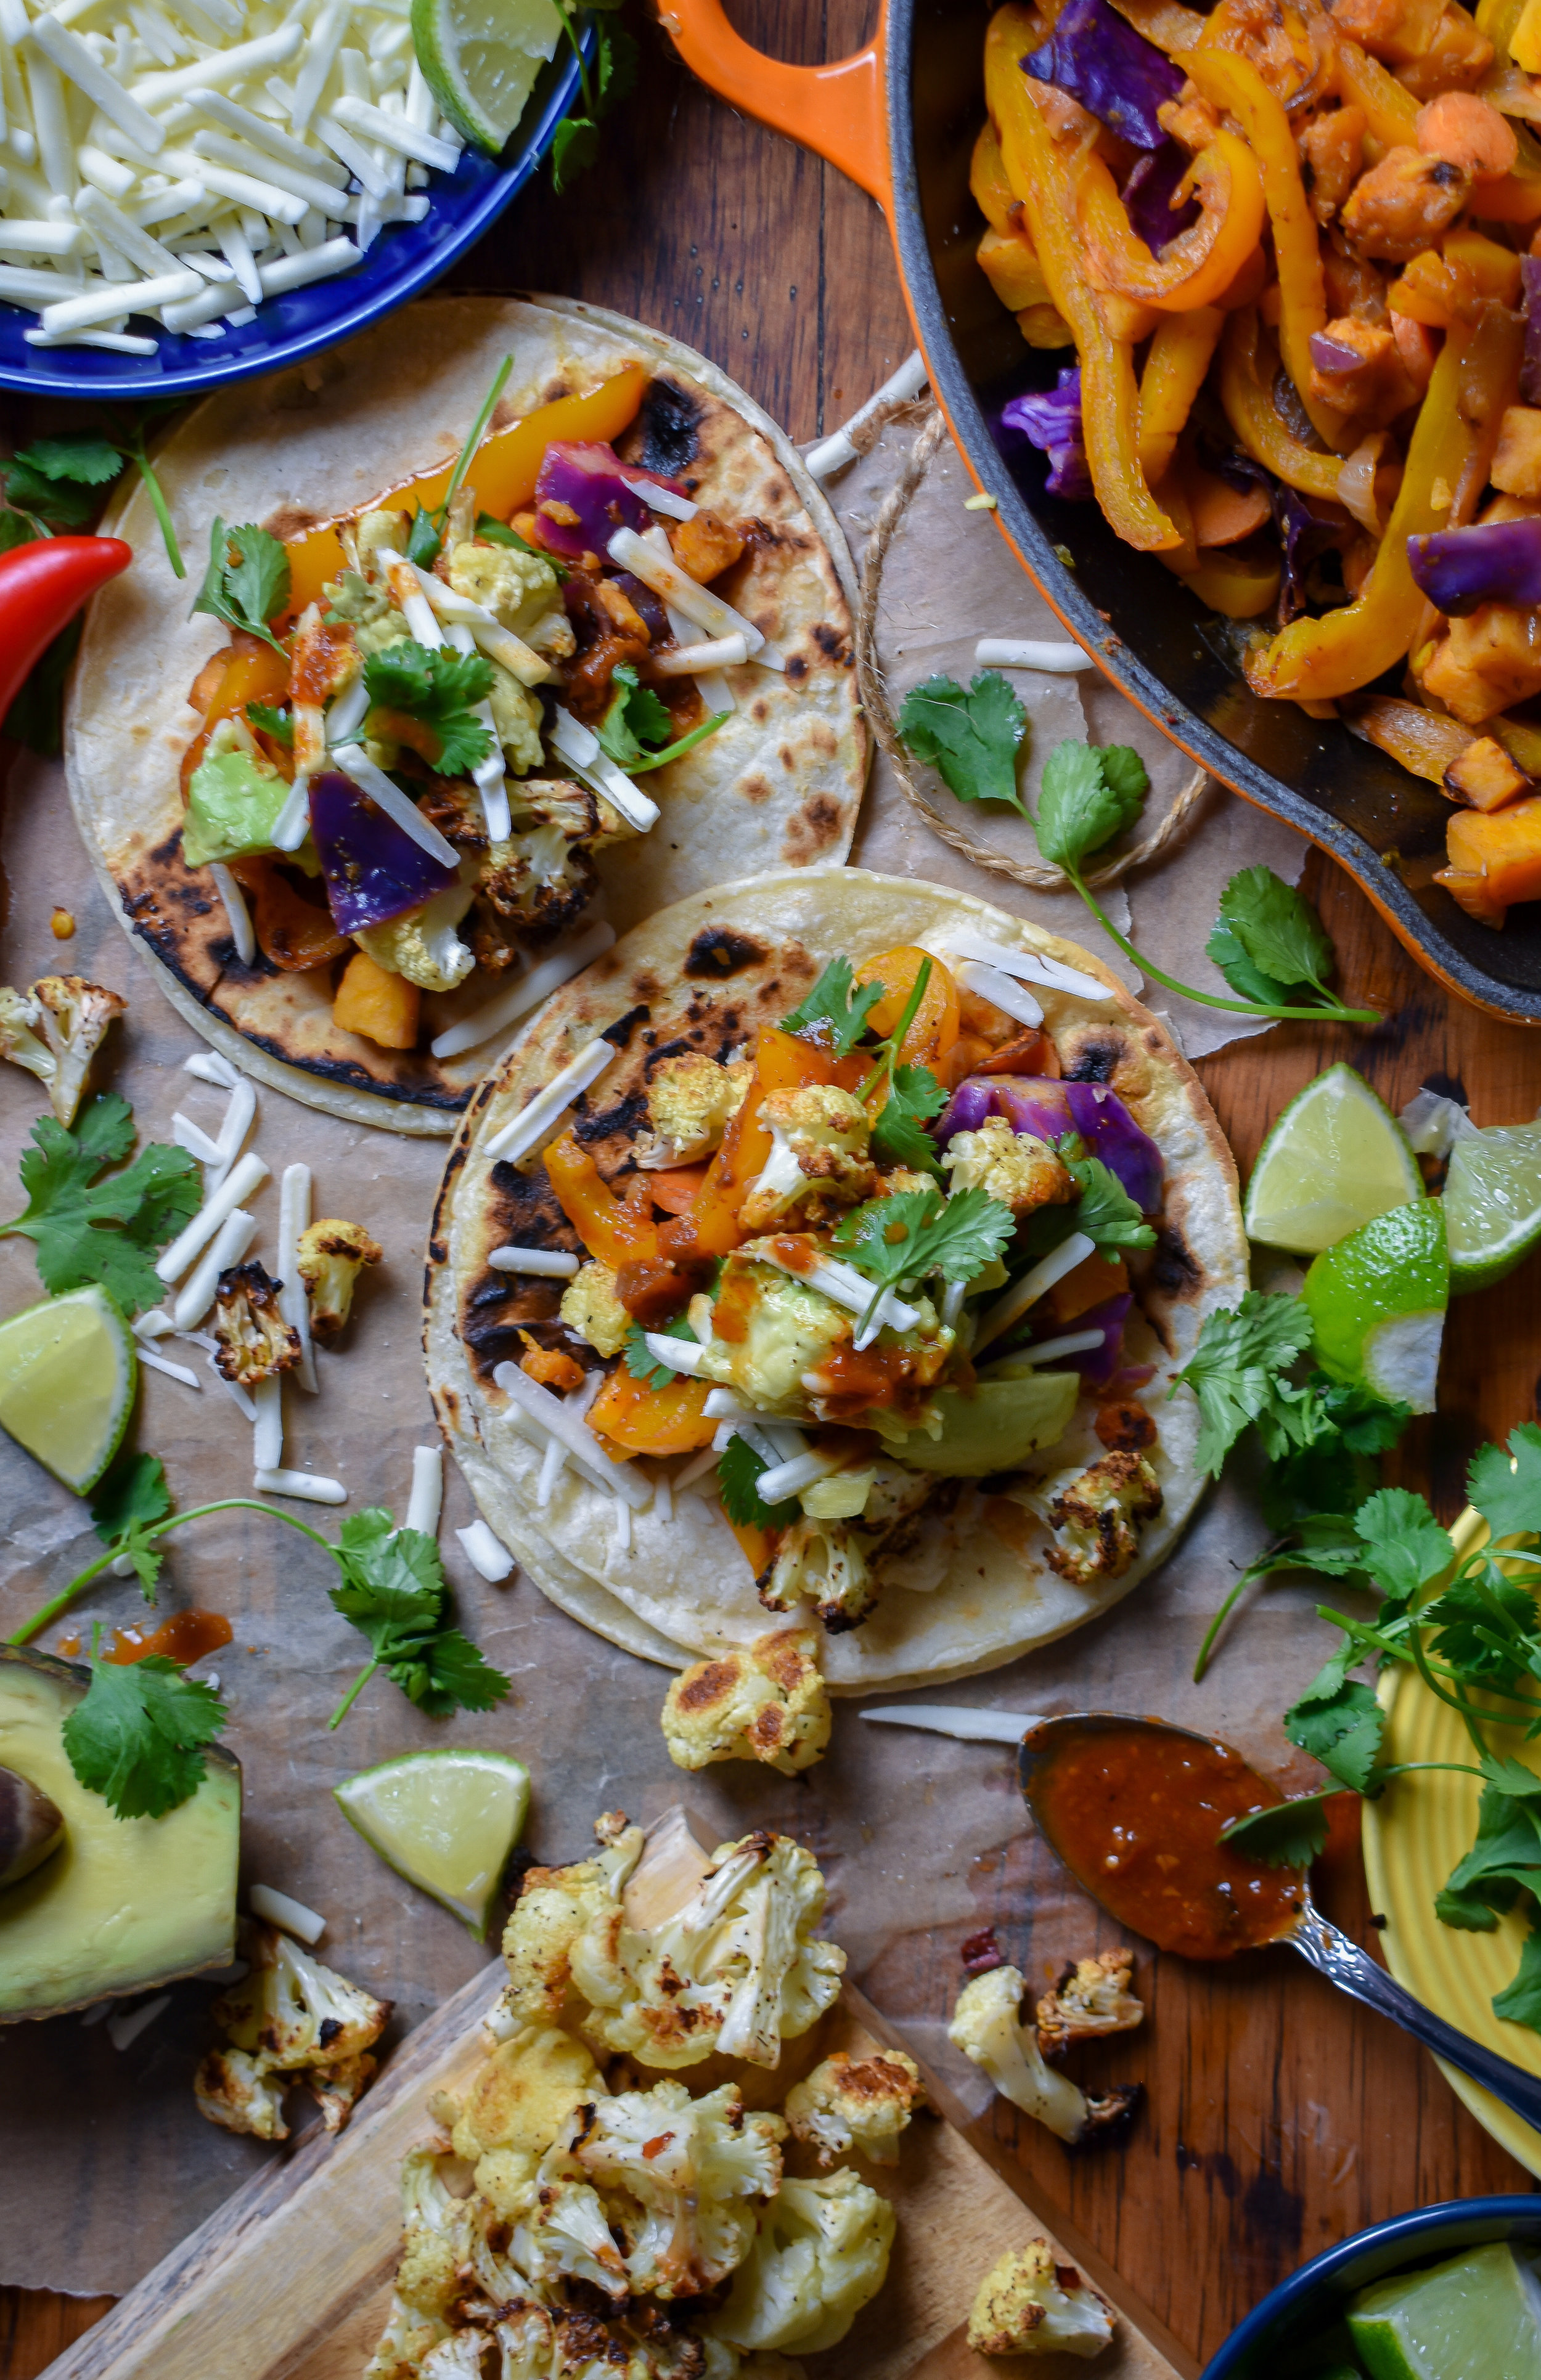 4. To finish, char your tortillas on a hot dry pan over high heat. Cook for 10-20 seconds on each side. Serve with salsa, fresh cilantro, lime wedges, avocado, dairy-free cheese, and any other fajita favs!